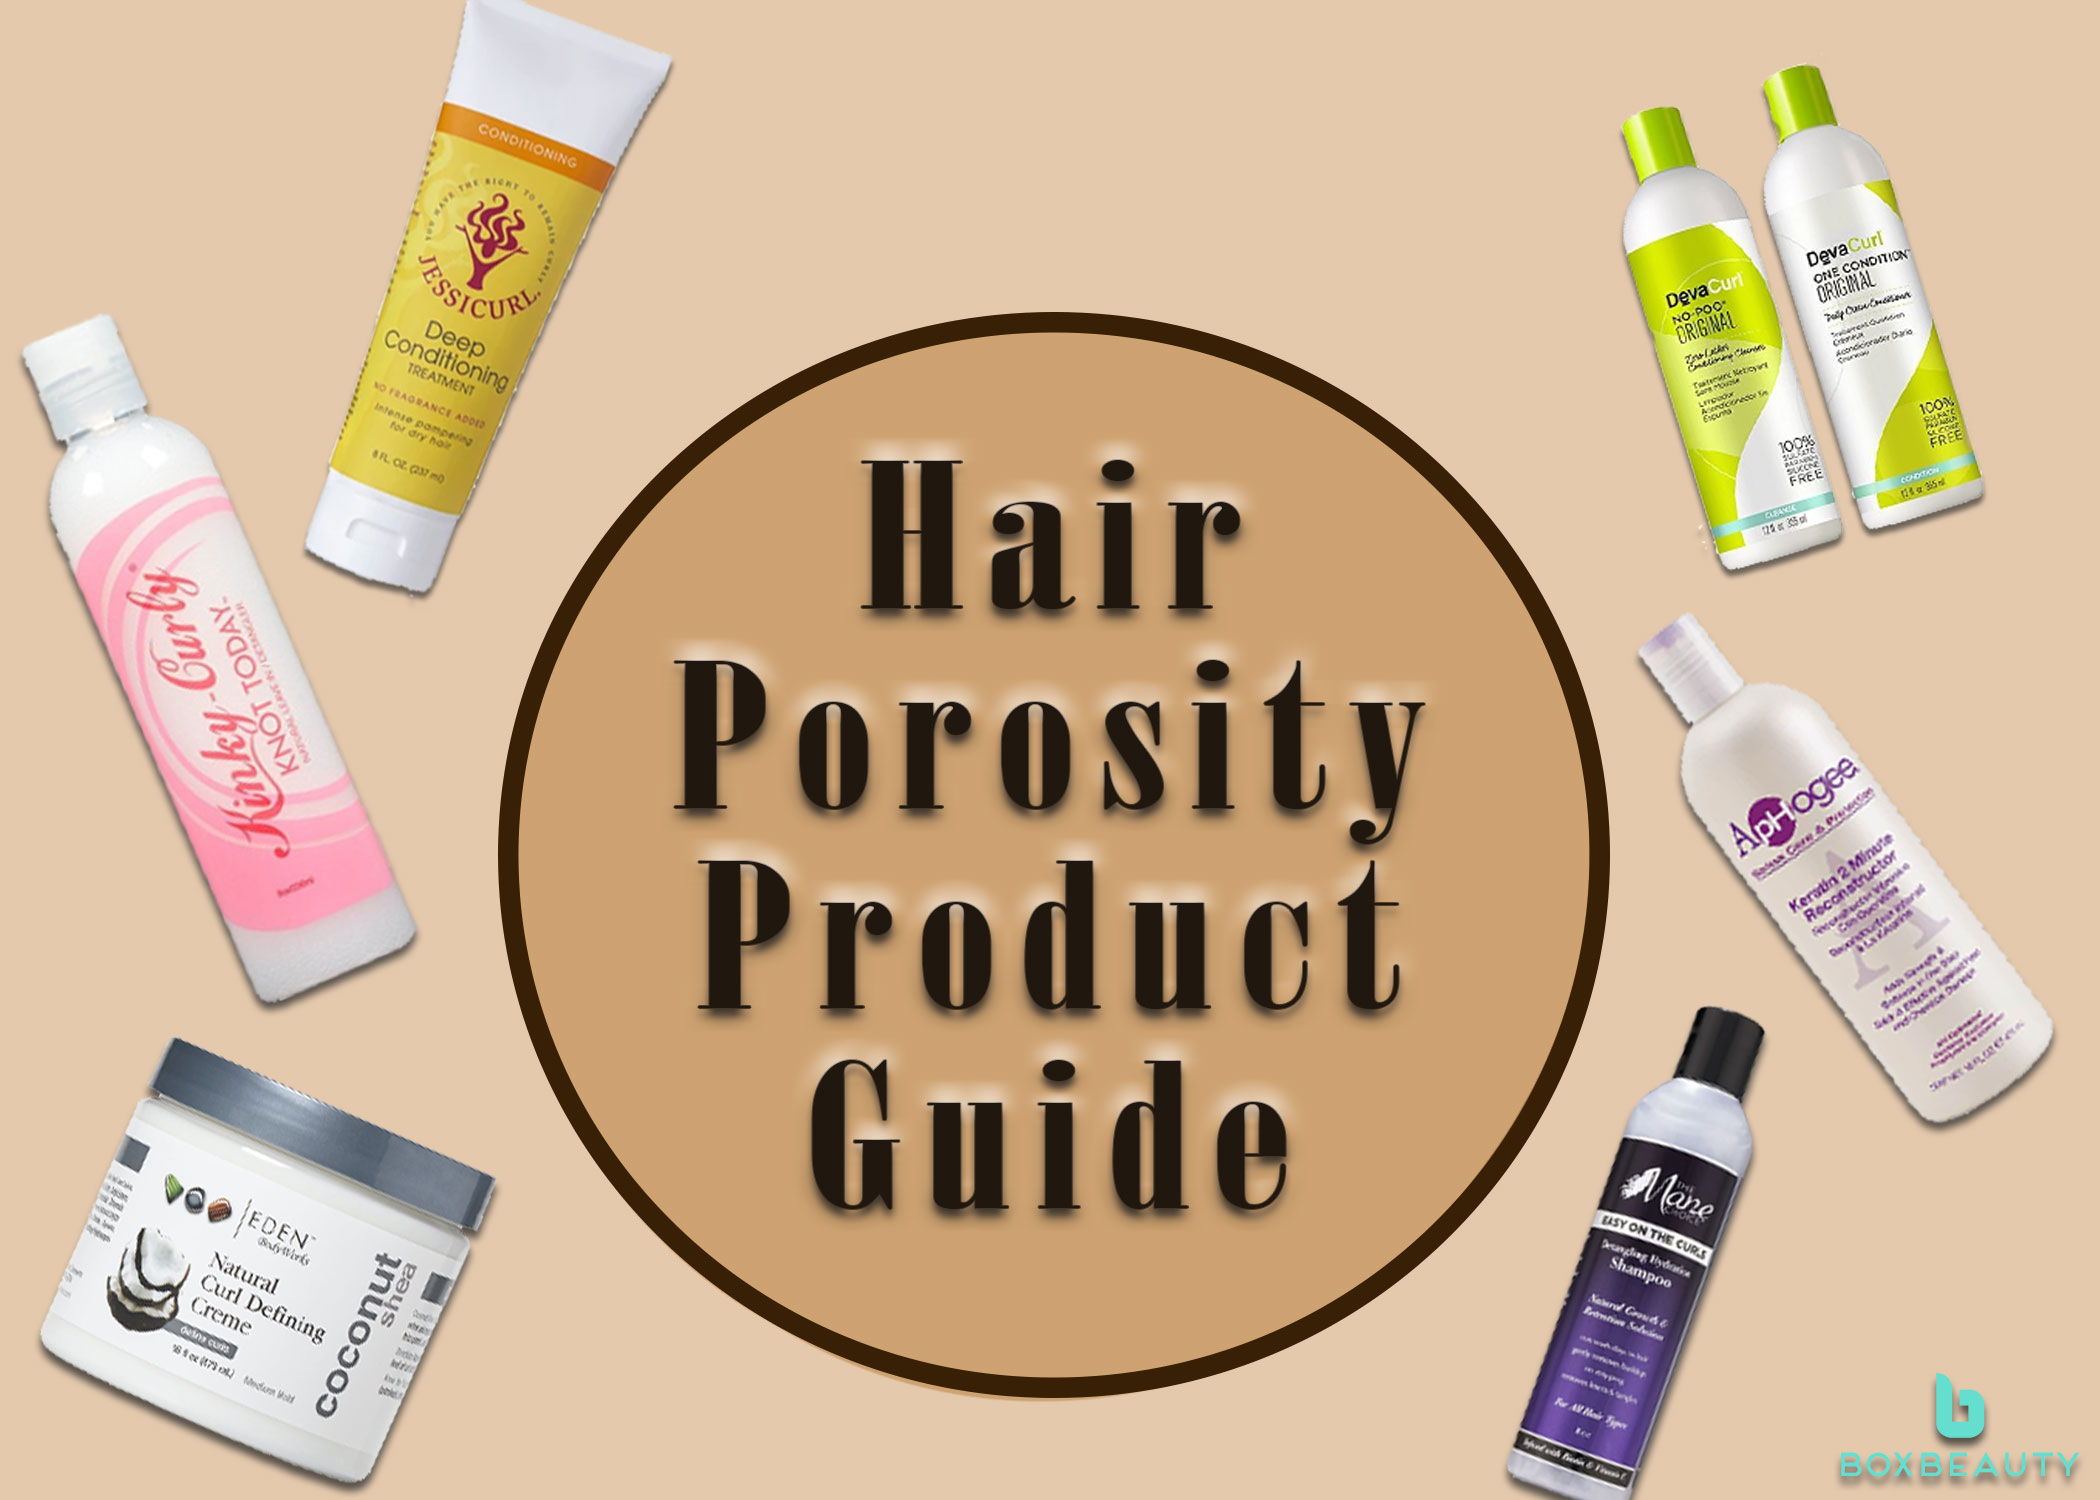 The Hair Porosity Product Guide